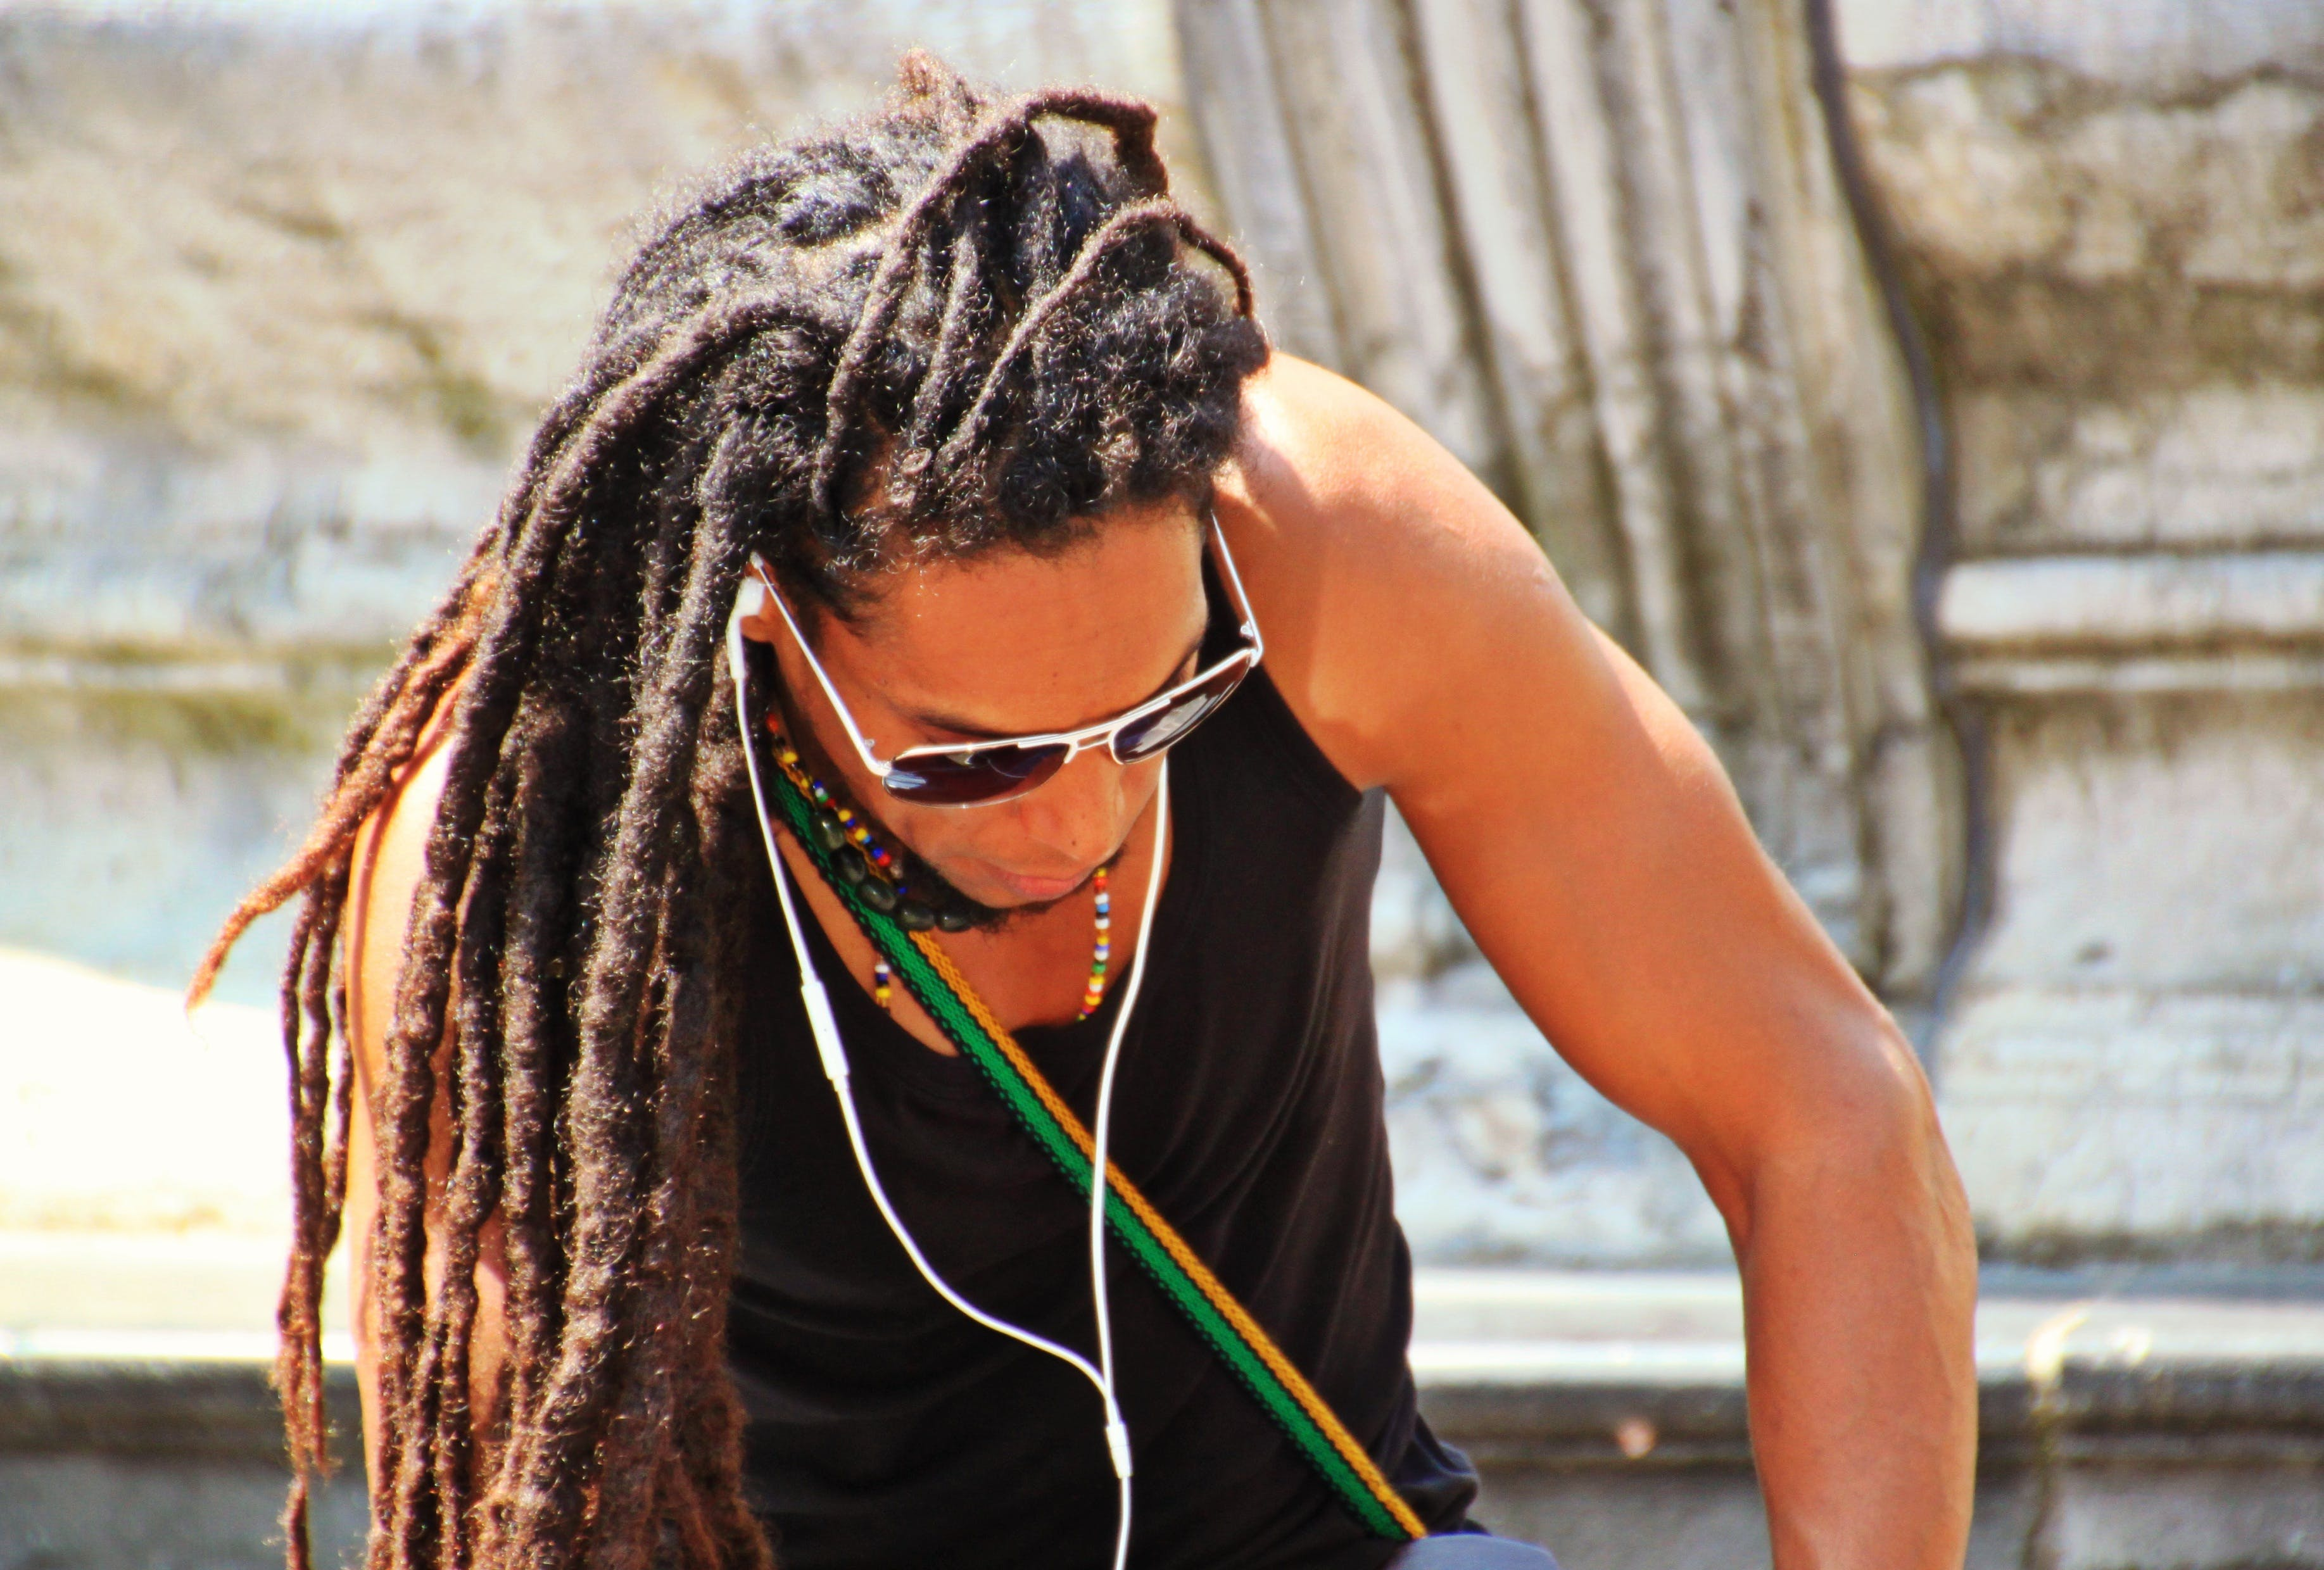 Man in Black Tank Top With Braided Hair